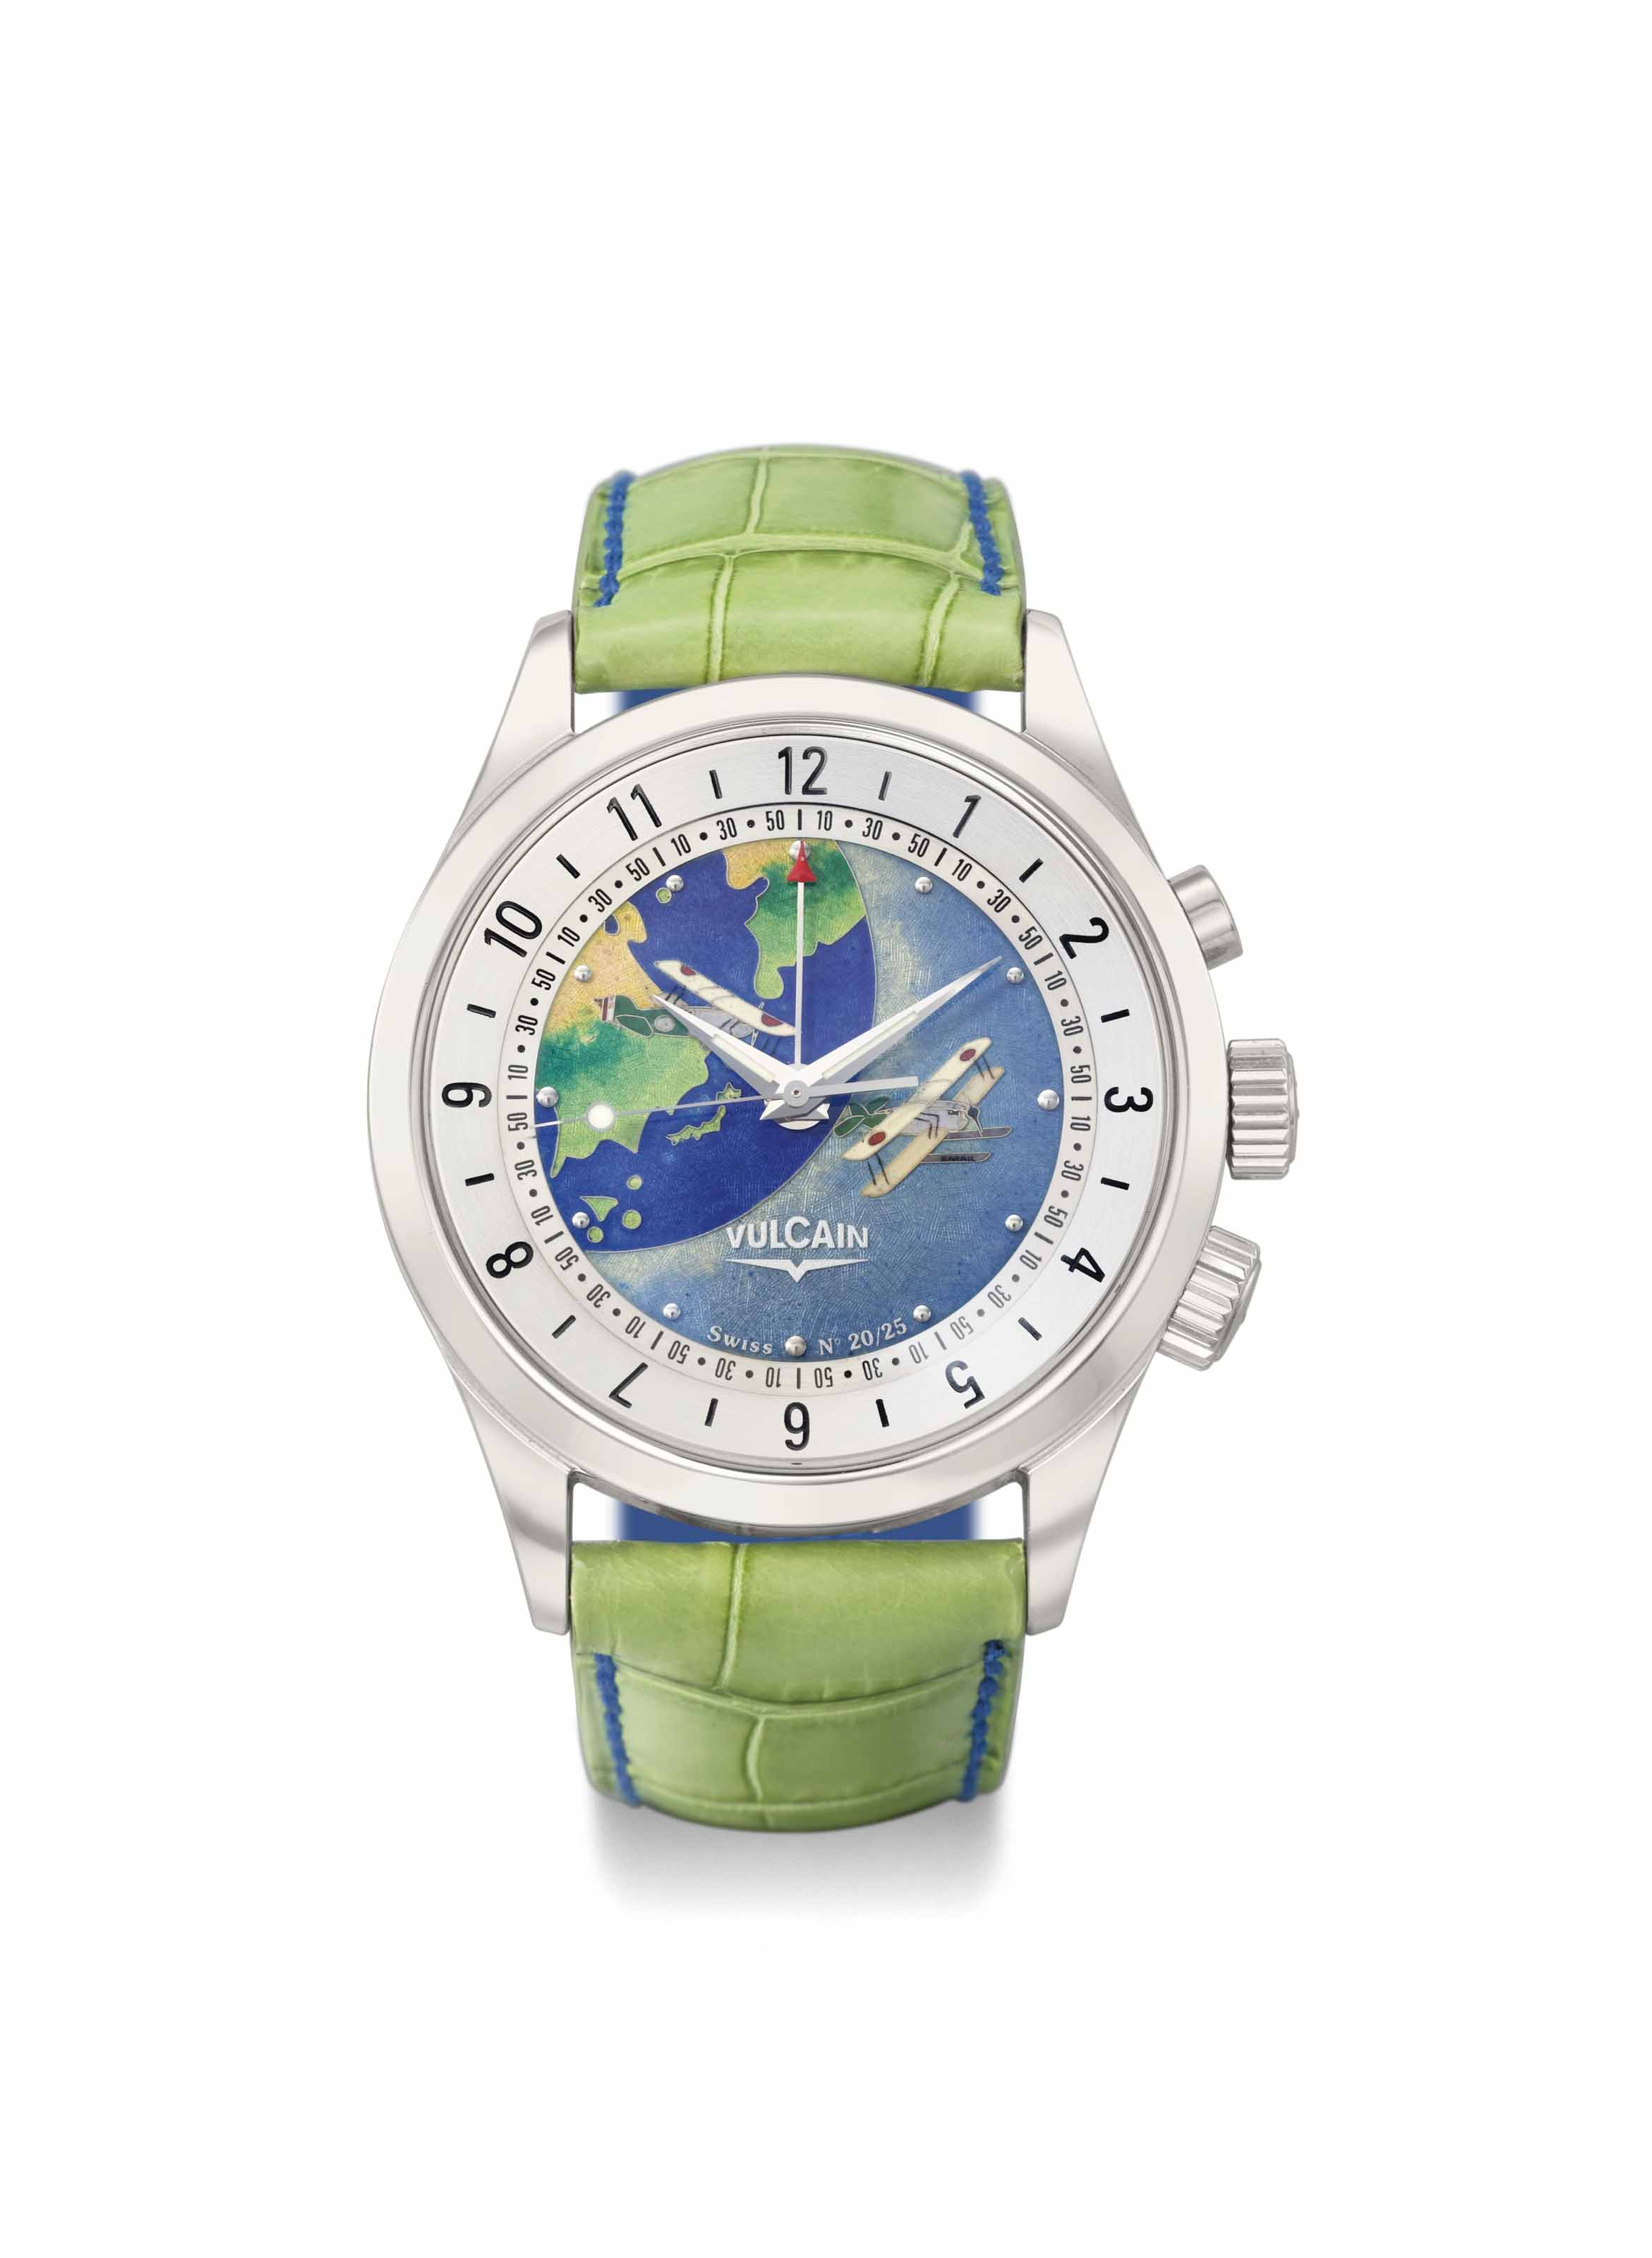 Vulcain. A fine 18K white gold limited edition dual time wristwatch with sweep centre seconds, alarm and cloisonné enamel dial